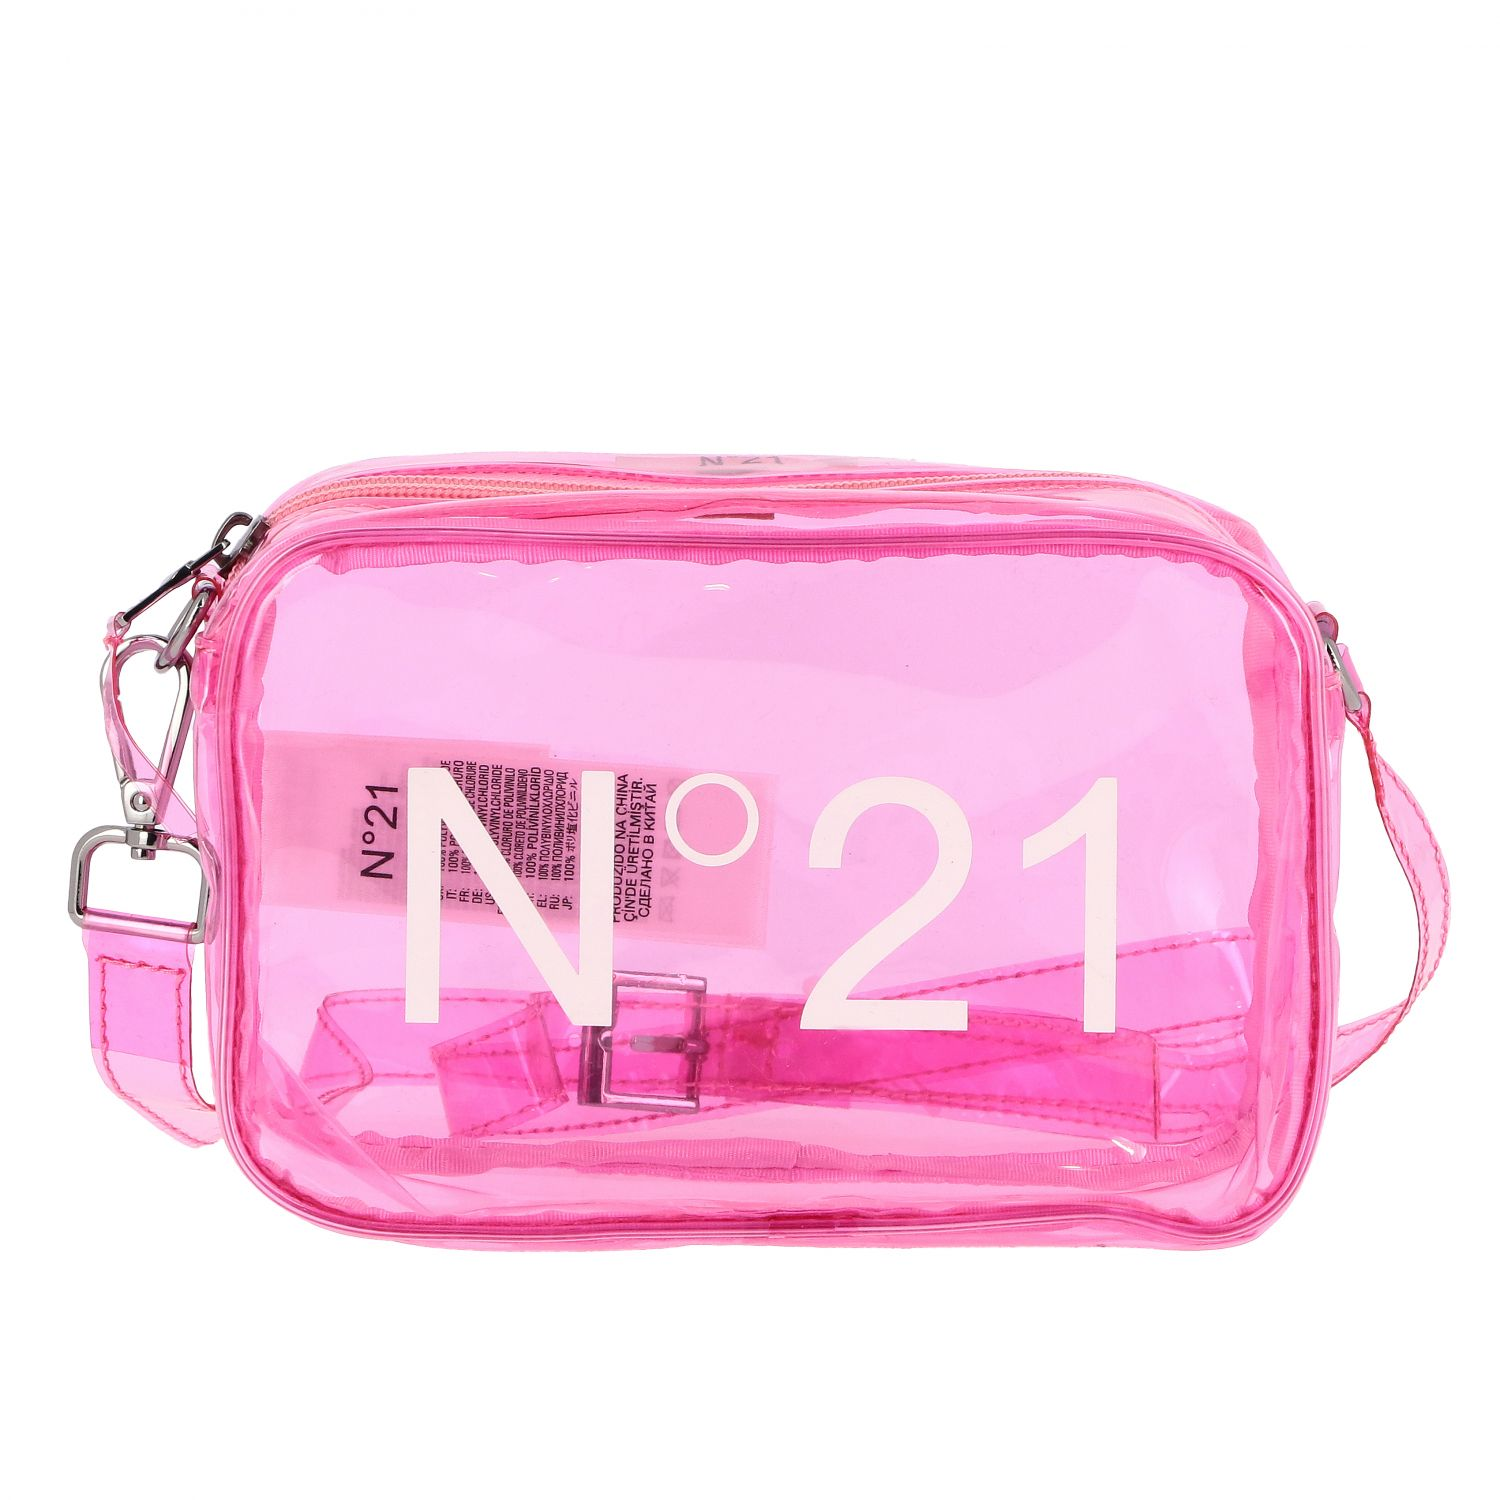 N ° 21 shoulder bag in pvc pink 1